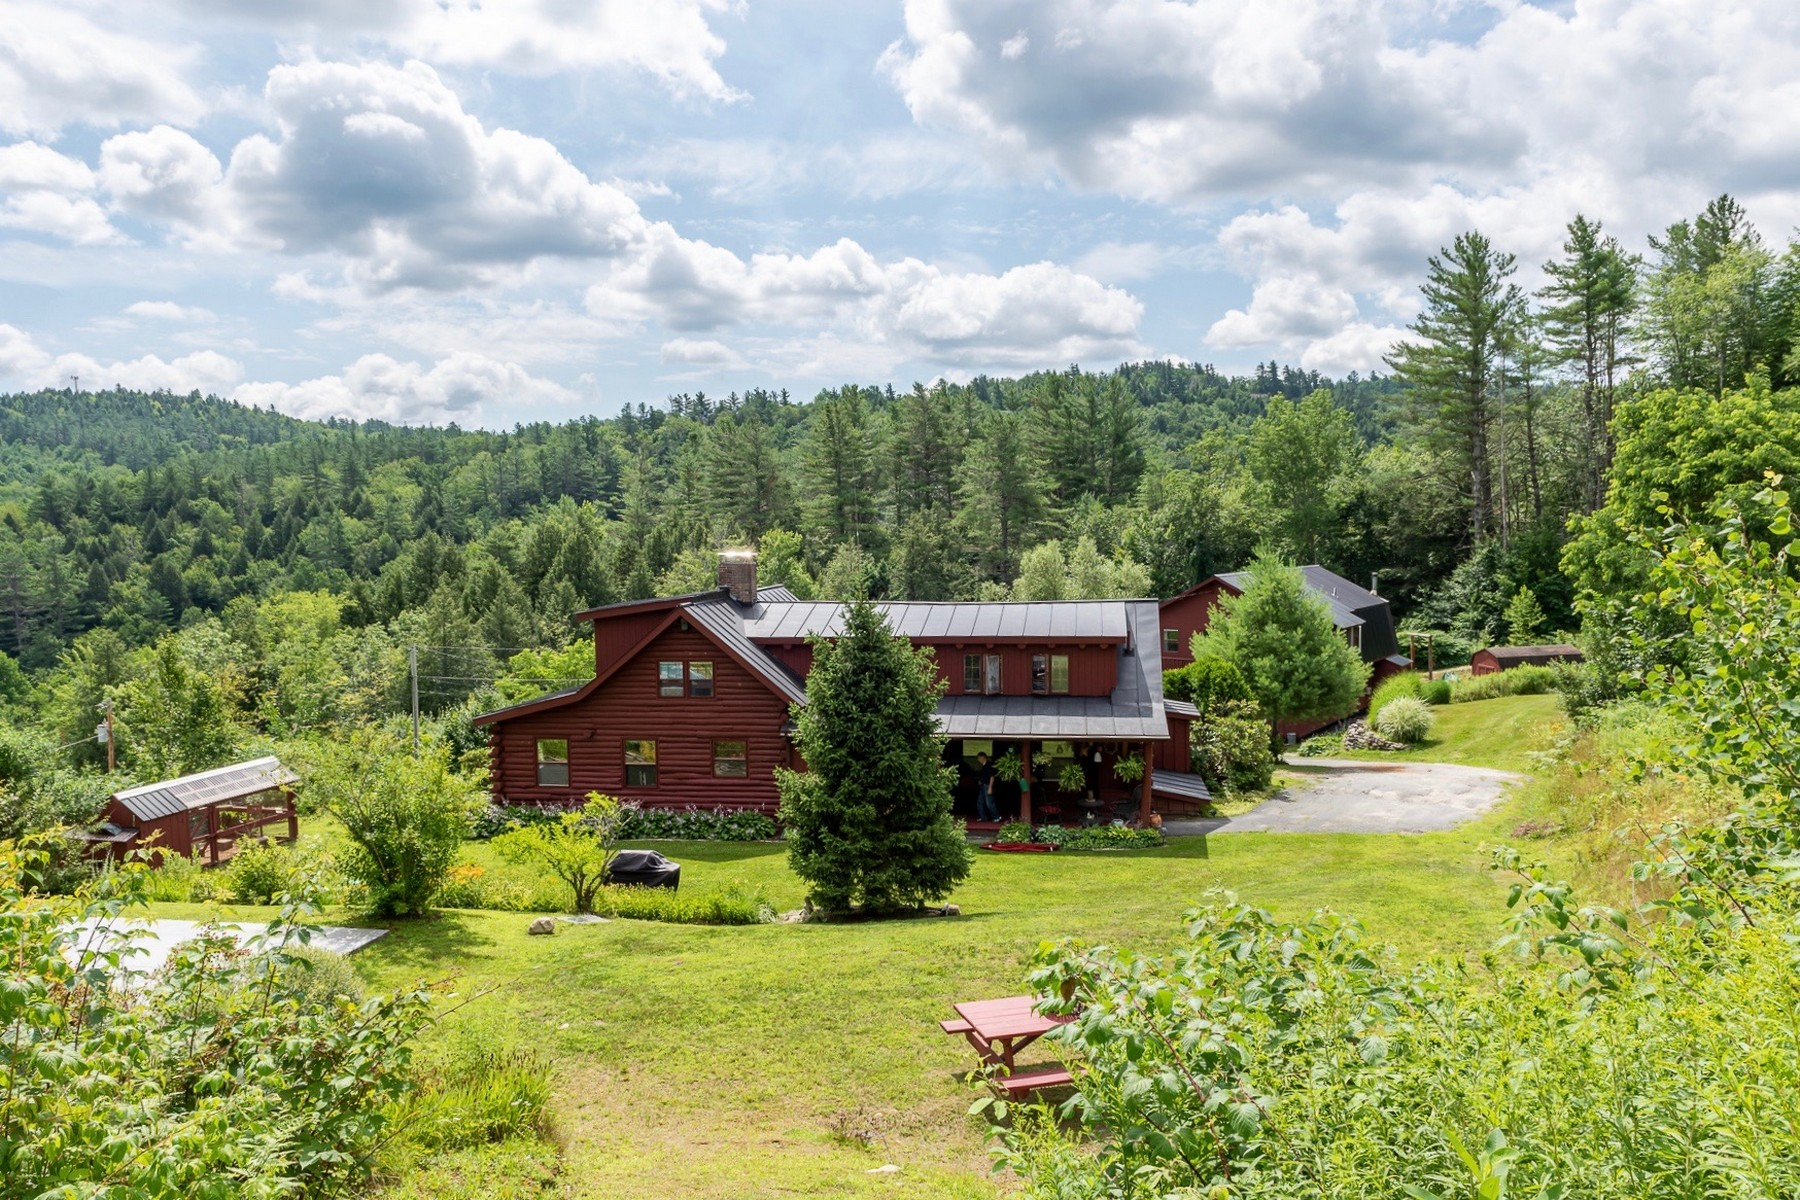 Single Family Homes for Sale at Ludlow Village on 4.7 Acres 6 Parker Ave Ludlow, Vermont 05149 United States